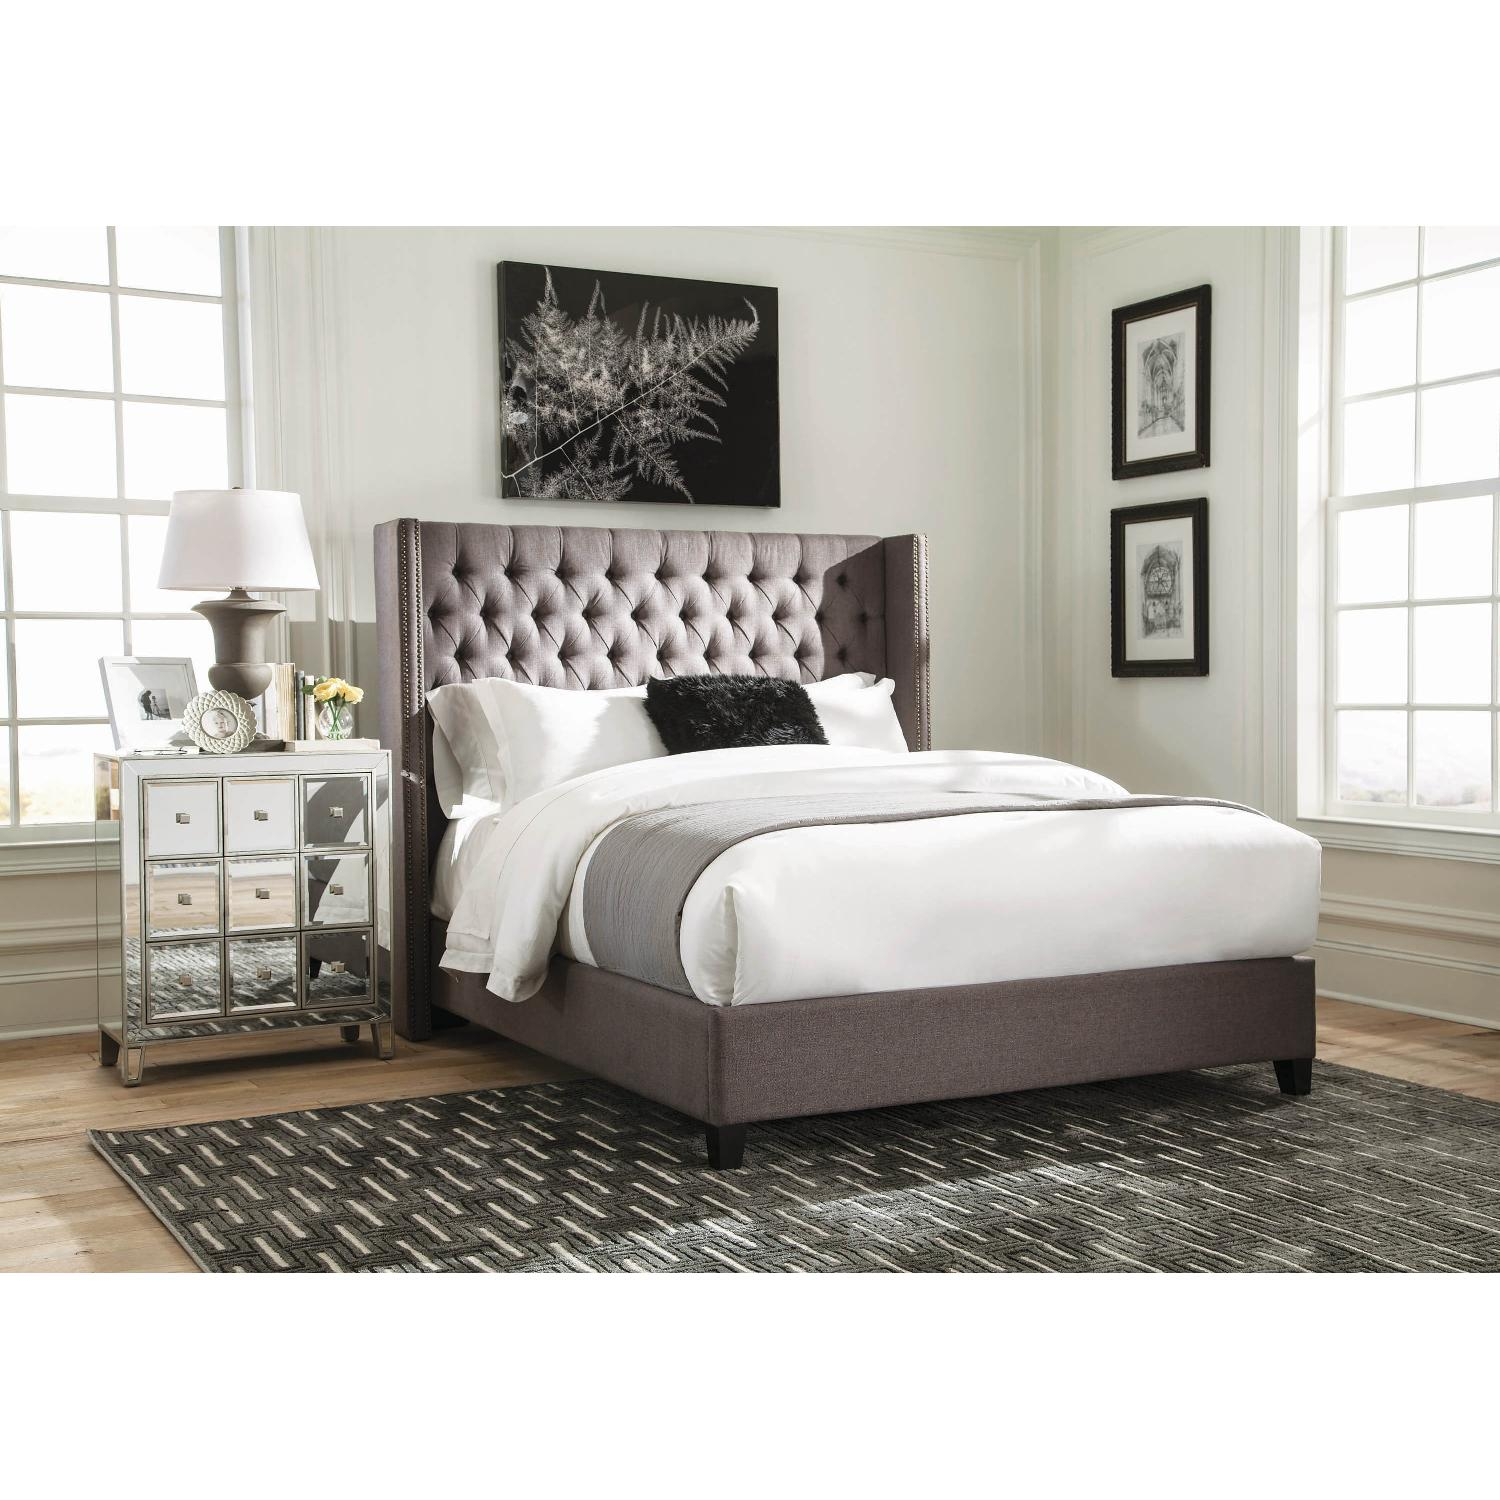 Modern Demi Wing Queen Bed in Grey w/ Nailhead Accent - image-8